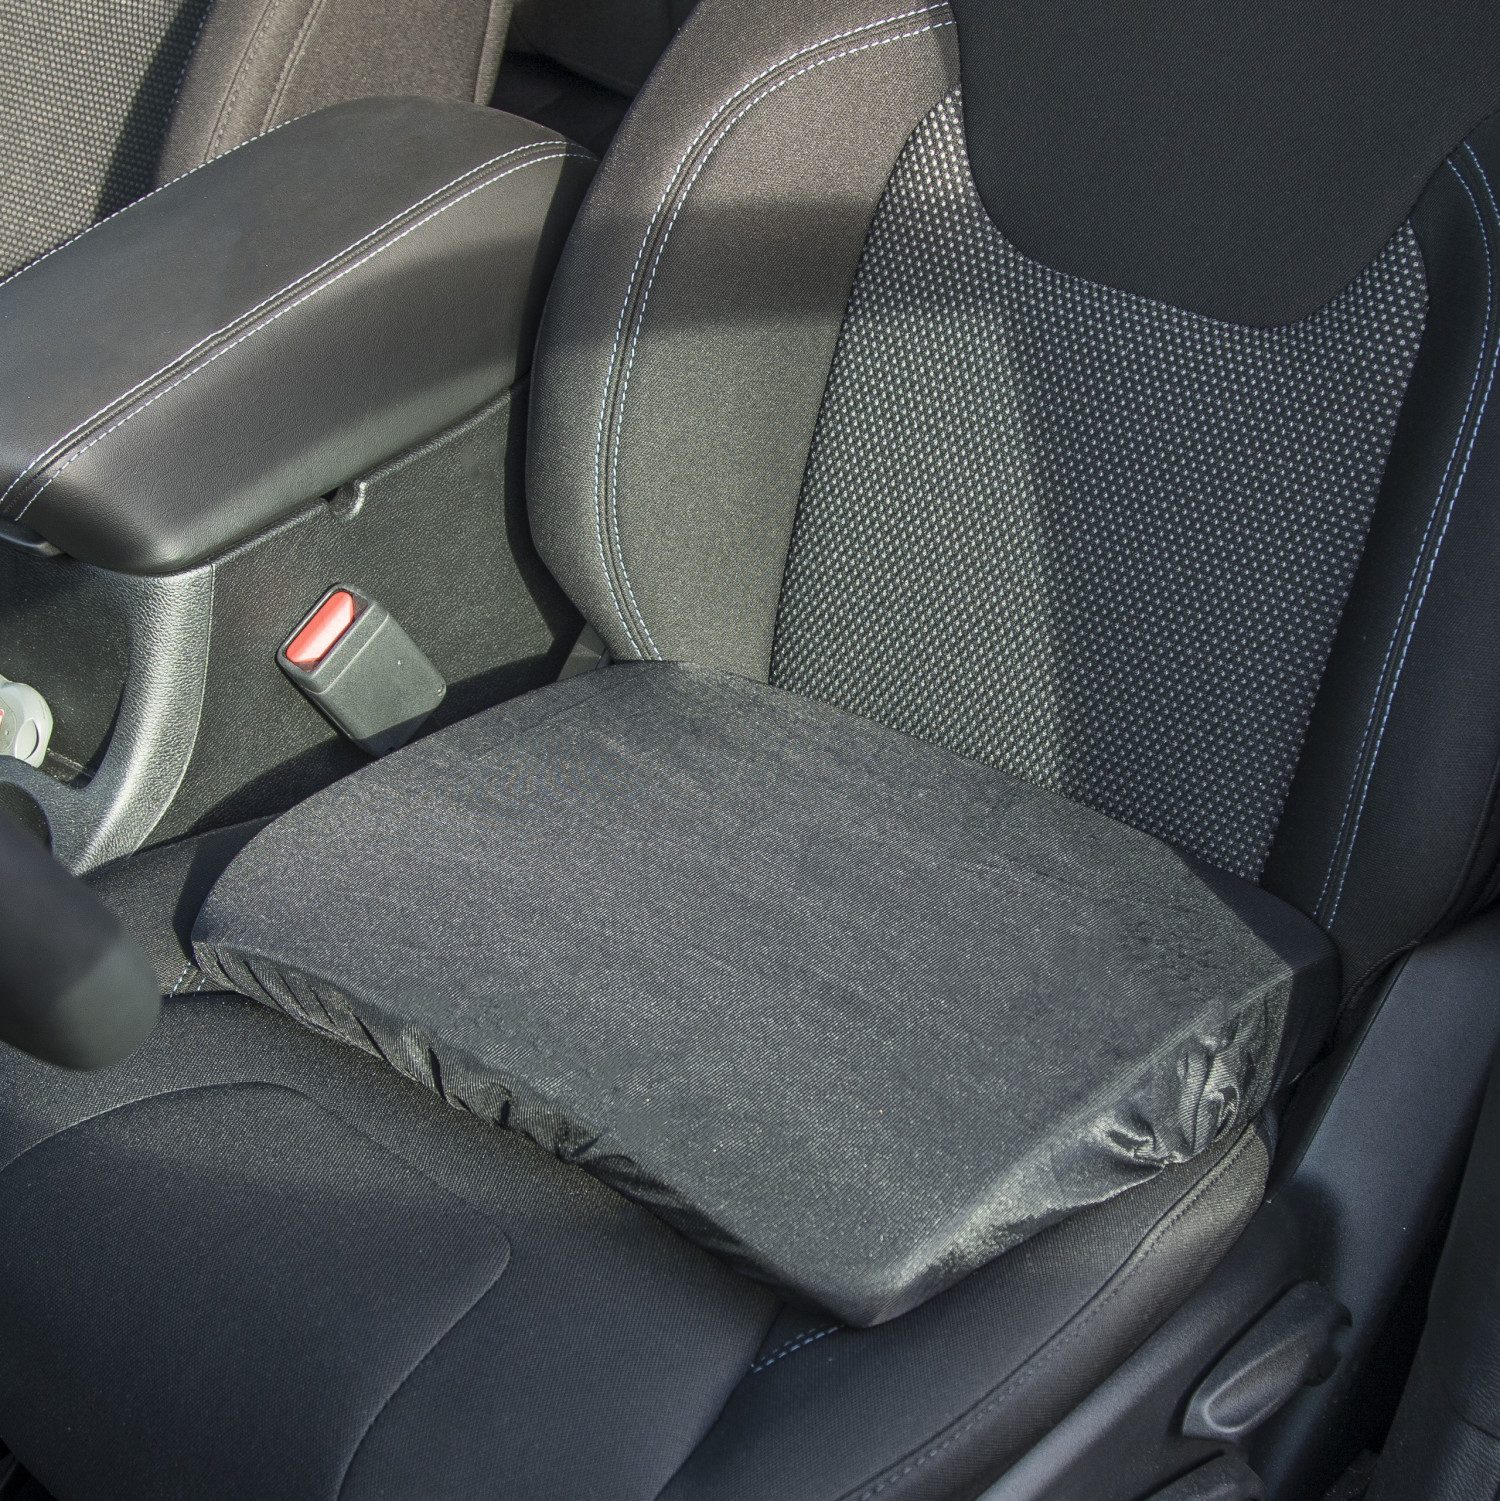 automotive seat riser cushion helps sight line while driving